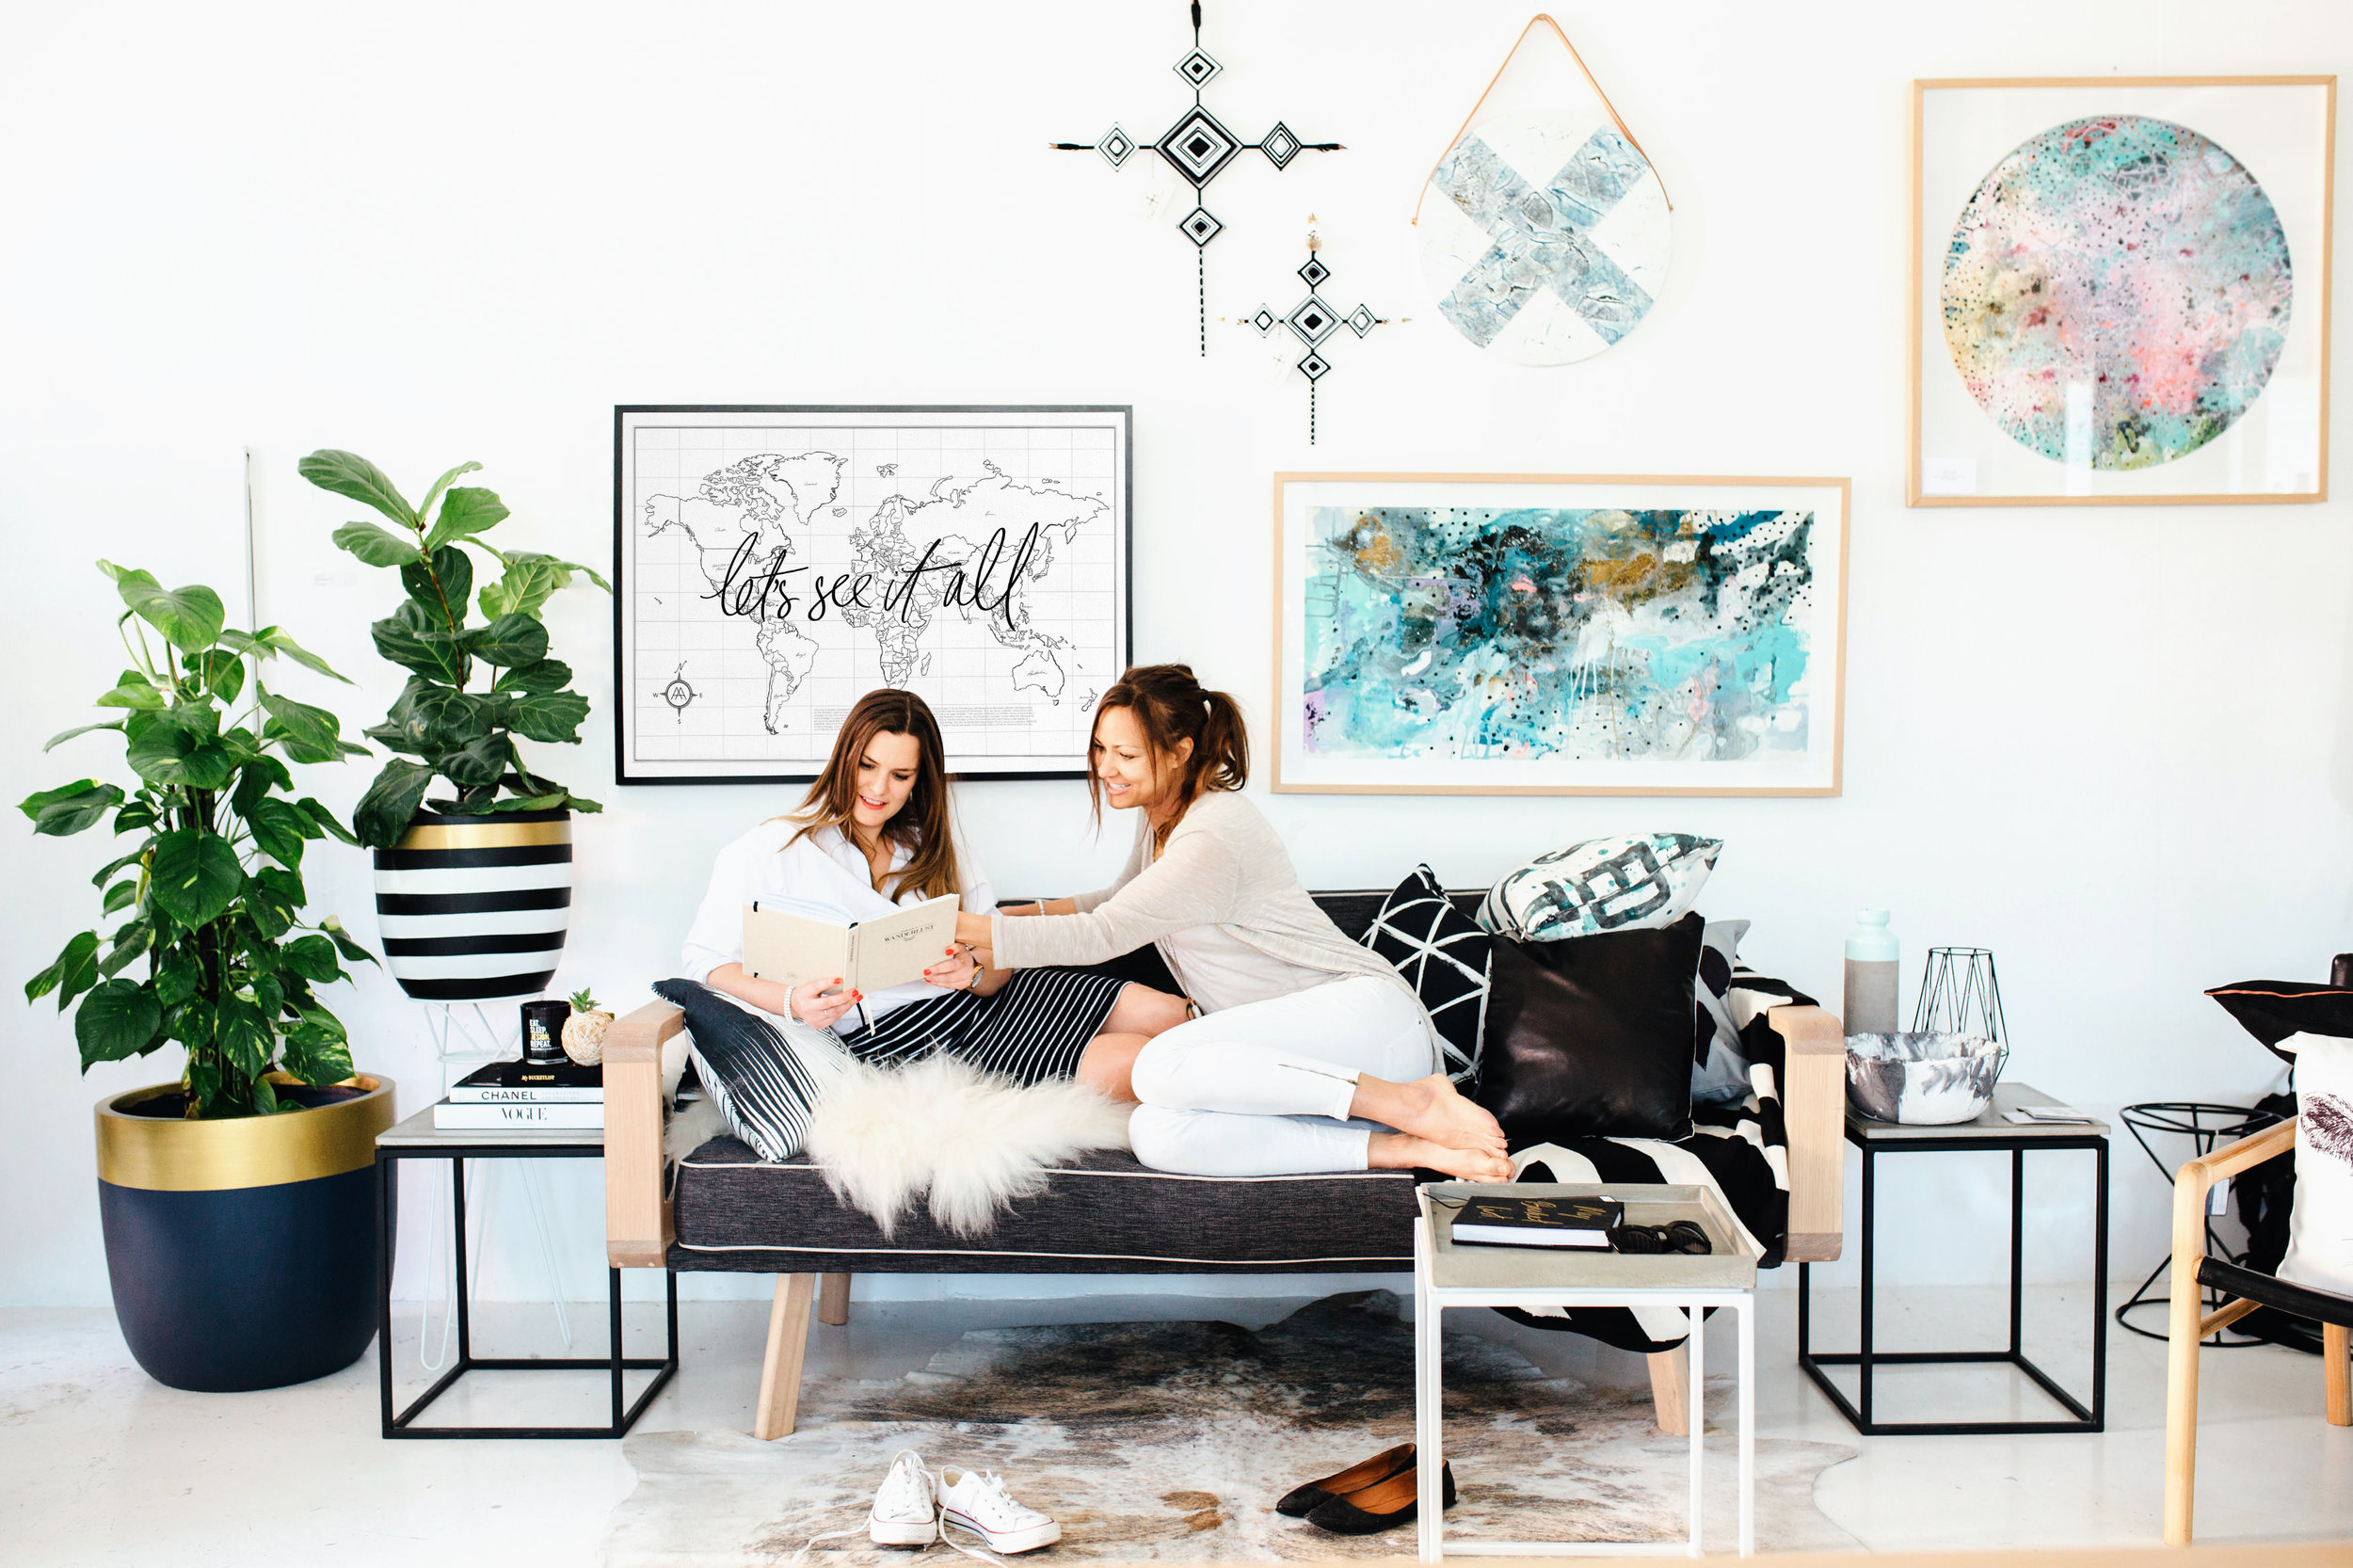 Axel & Ash showing us the meaning of interior goals